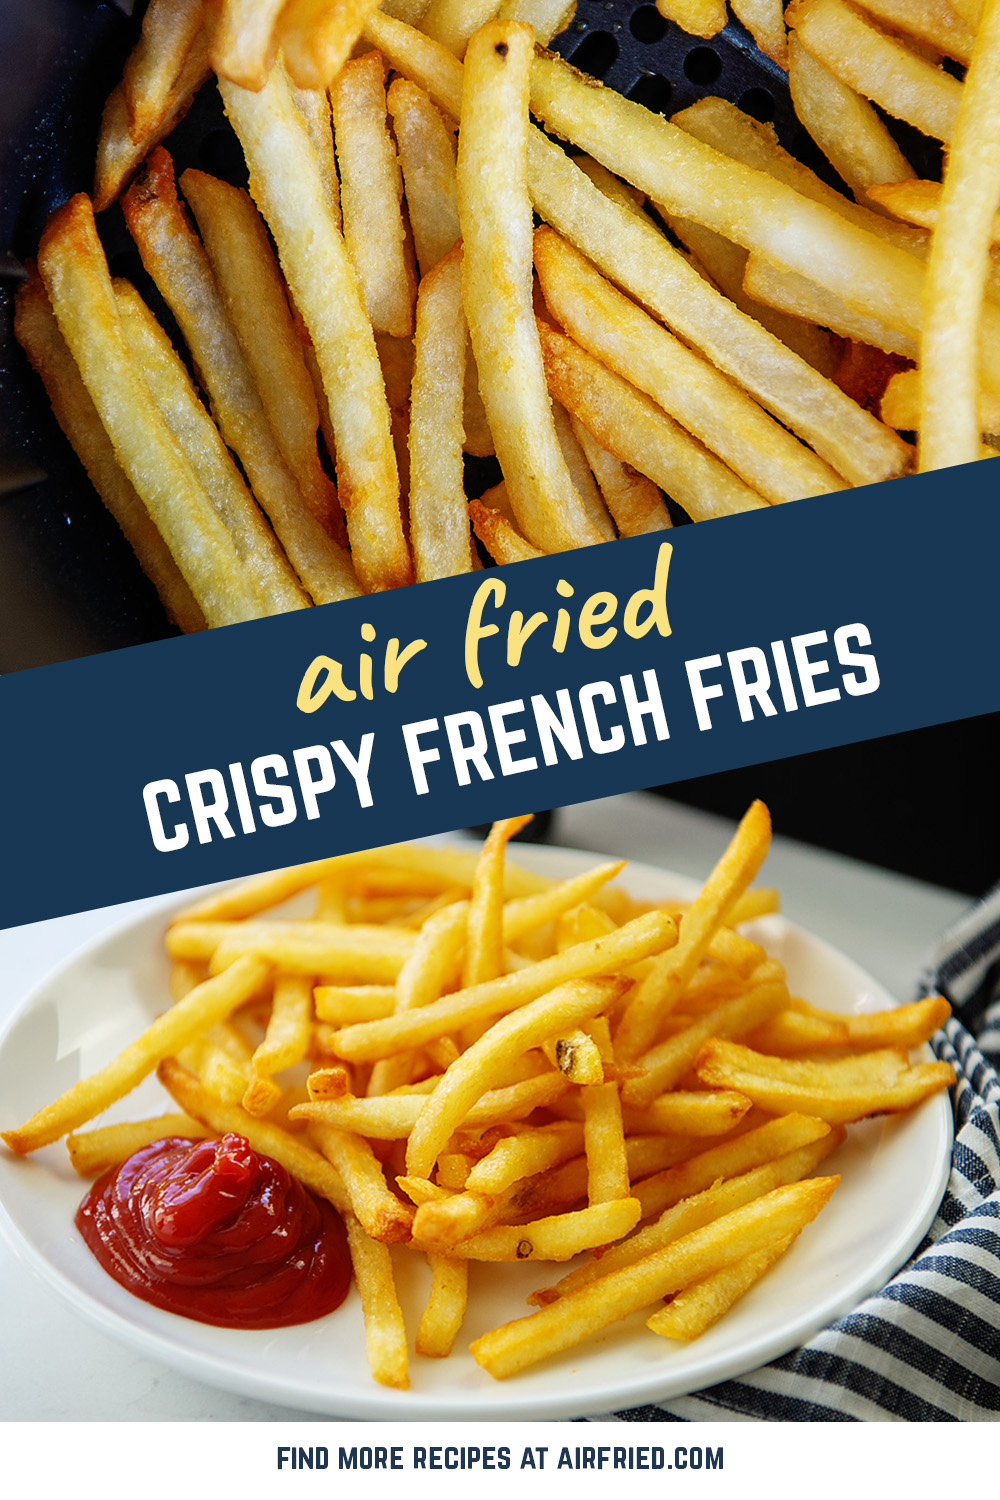 Frozen french fries cook crisply in an air fryer! #airfried #fries #recipes